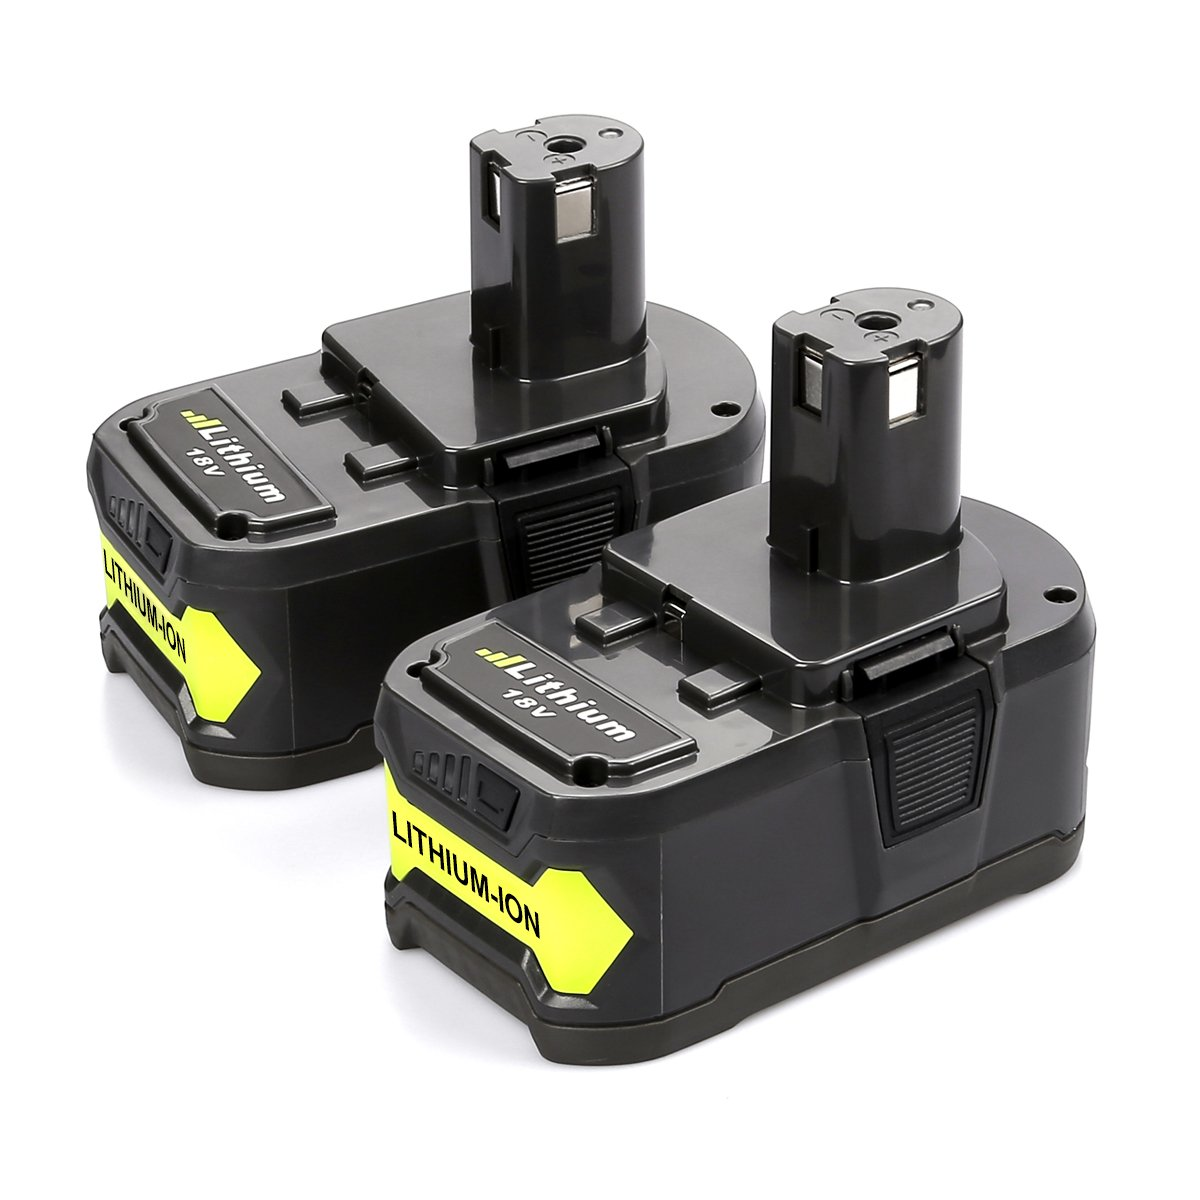 Energup 18V P108 Lithium Battery 4000mAh for Ryobi ONE+ P104 P105 P102 P103 P107 P507 BPL-1815 BPL-1820G BPL18151 BPL1820 Cordless Power Tools (2 Pack)